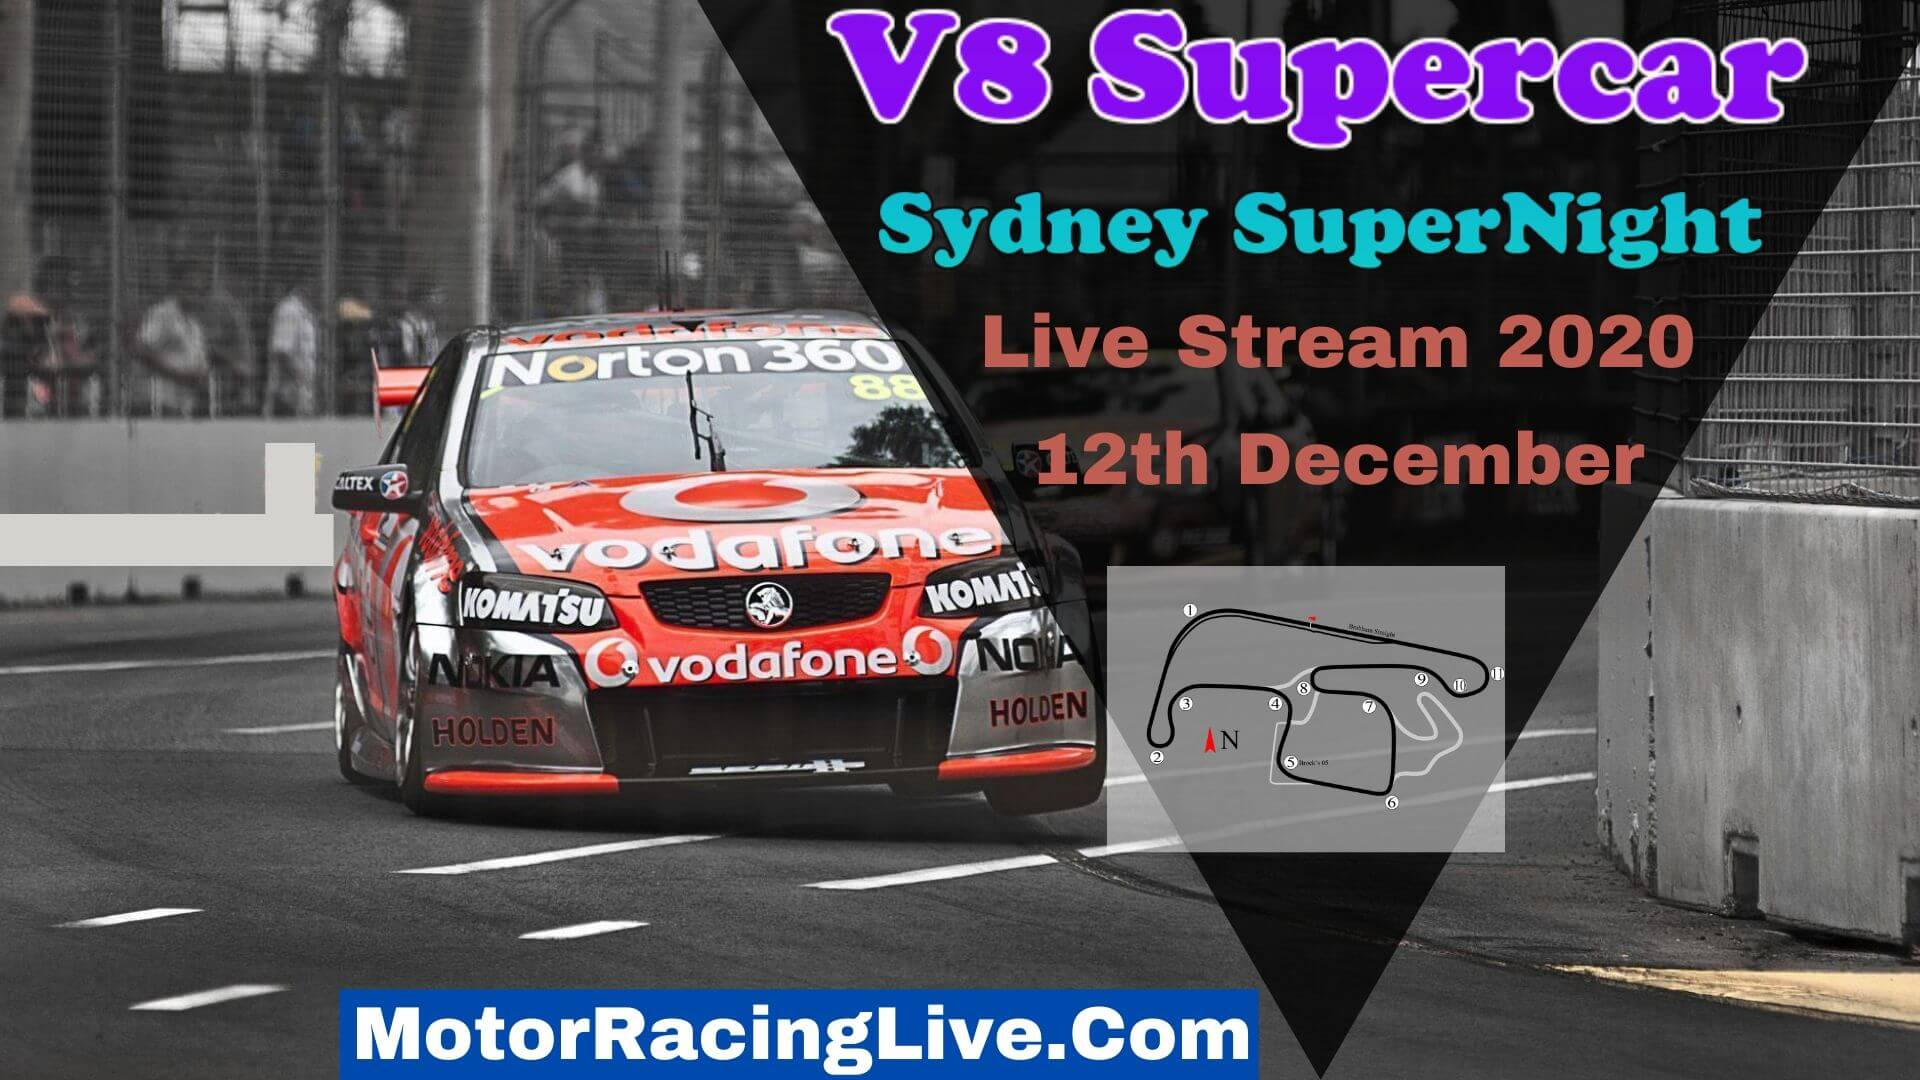 Sydney SuperNight Live Stream 2020 | V8 Supercar